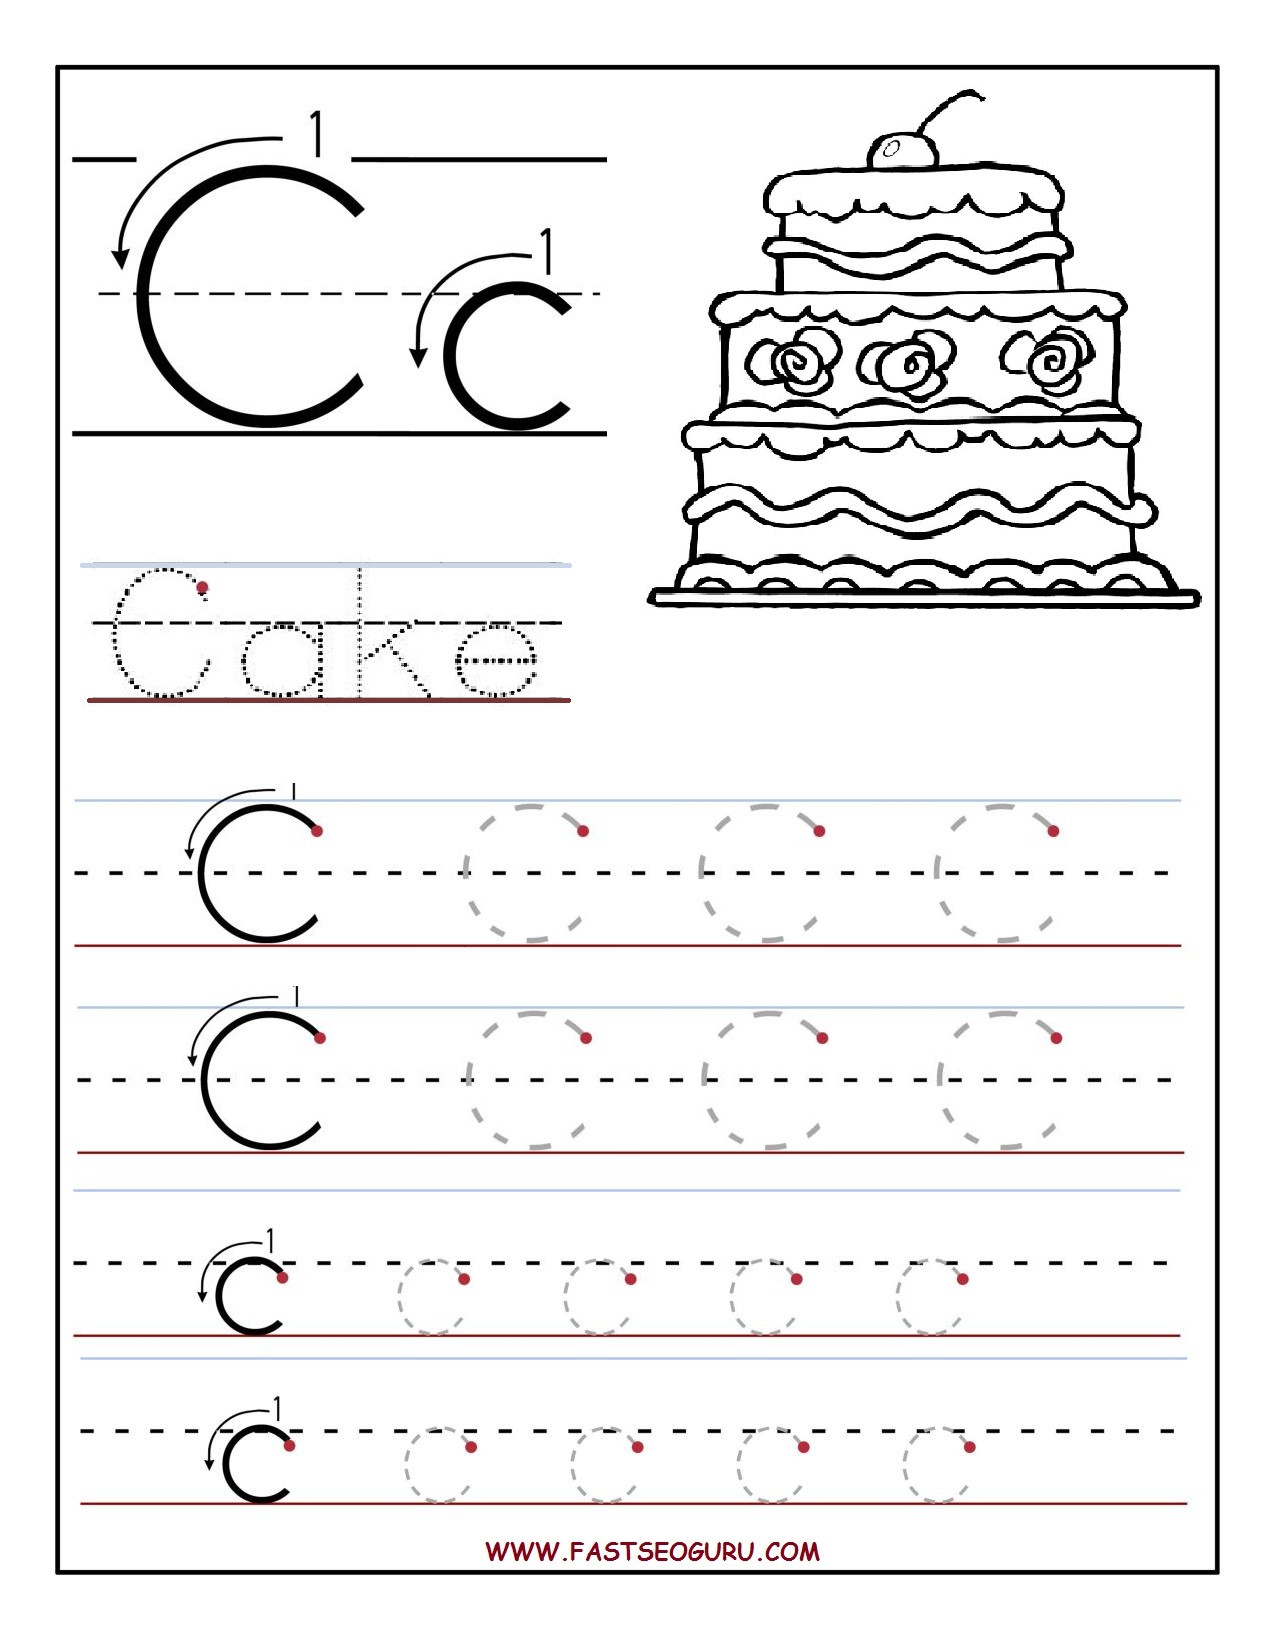 Printable Letter C Worksheets Printable Letter C Tracing Worksheets for Preschool